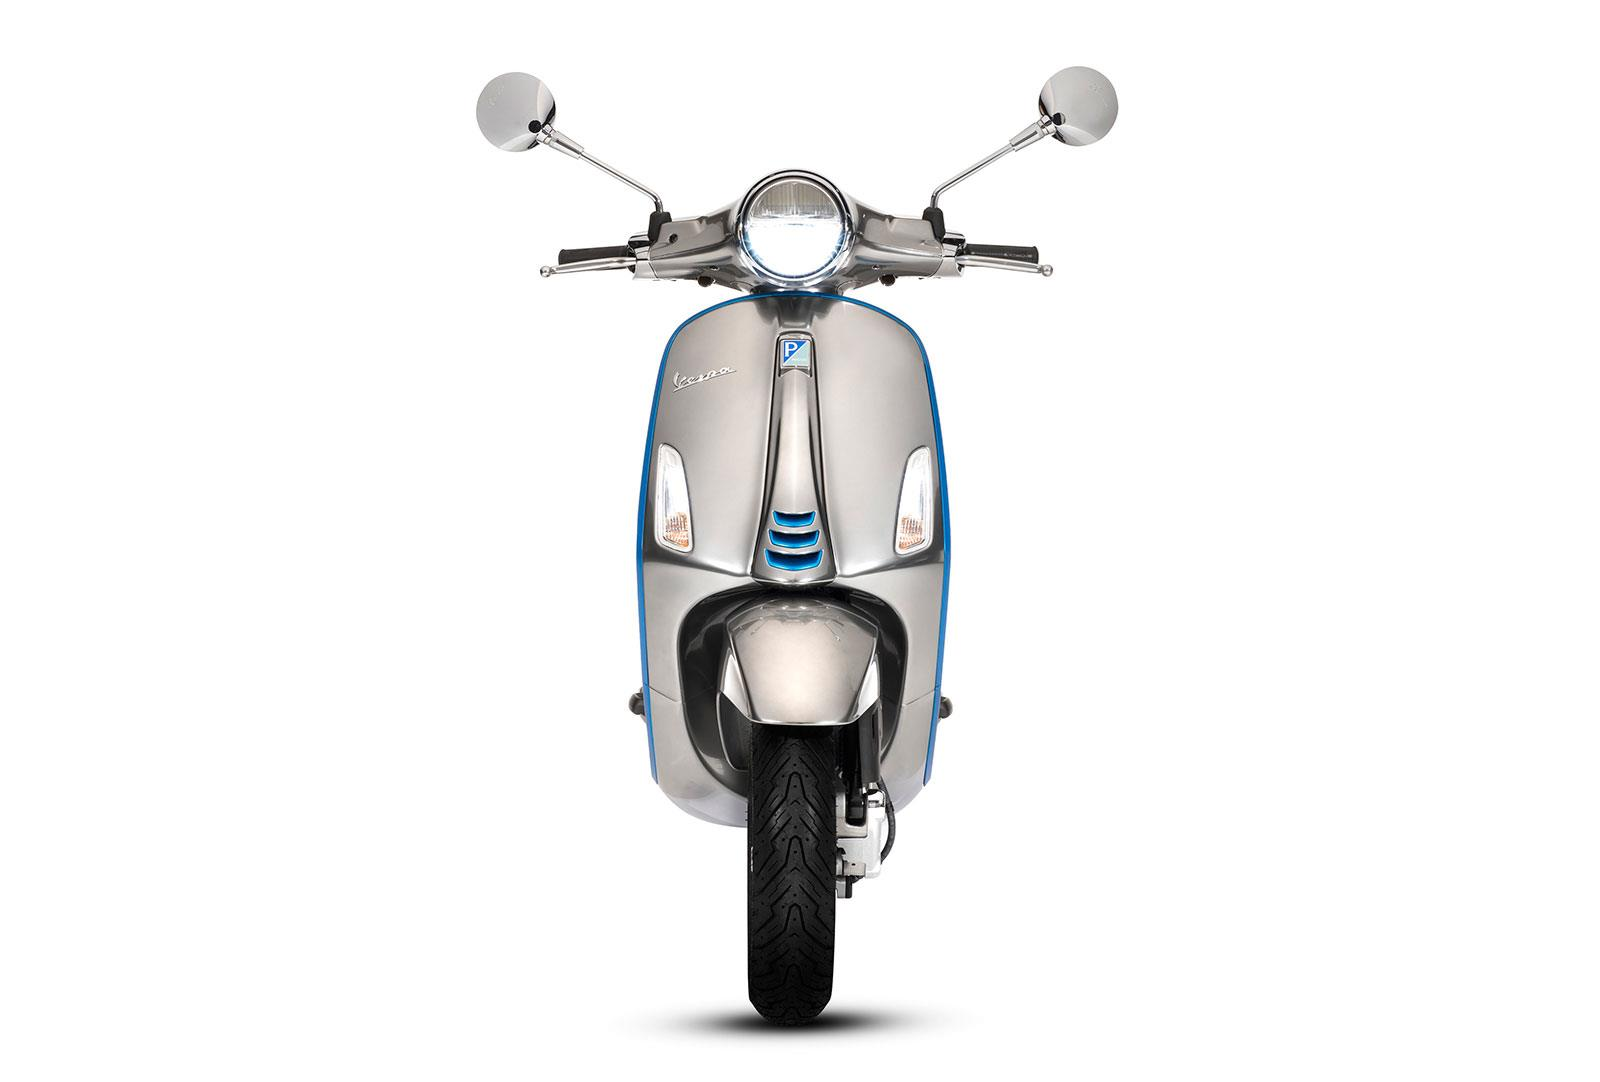 The Vespa Elettrica has all the same cool styling as the petrol bikes